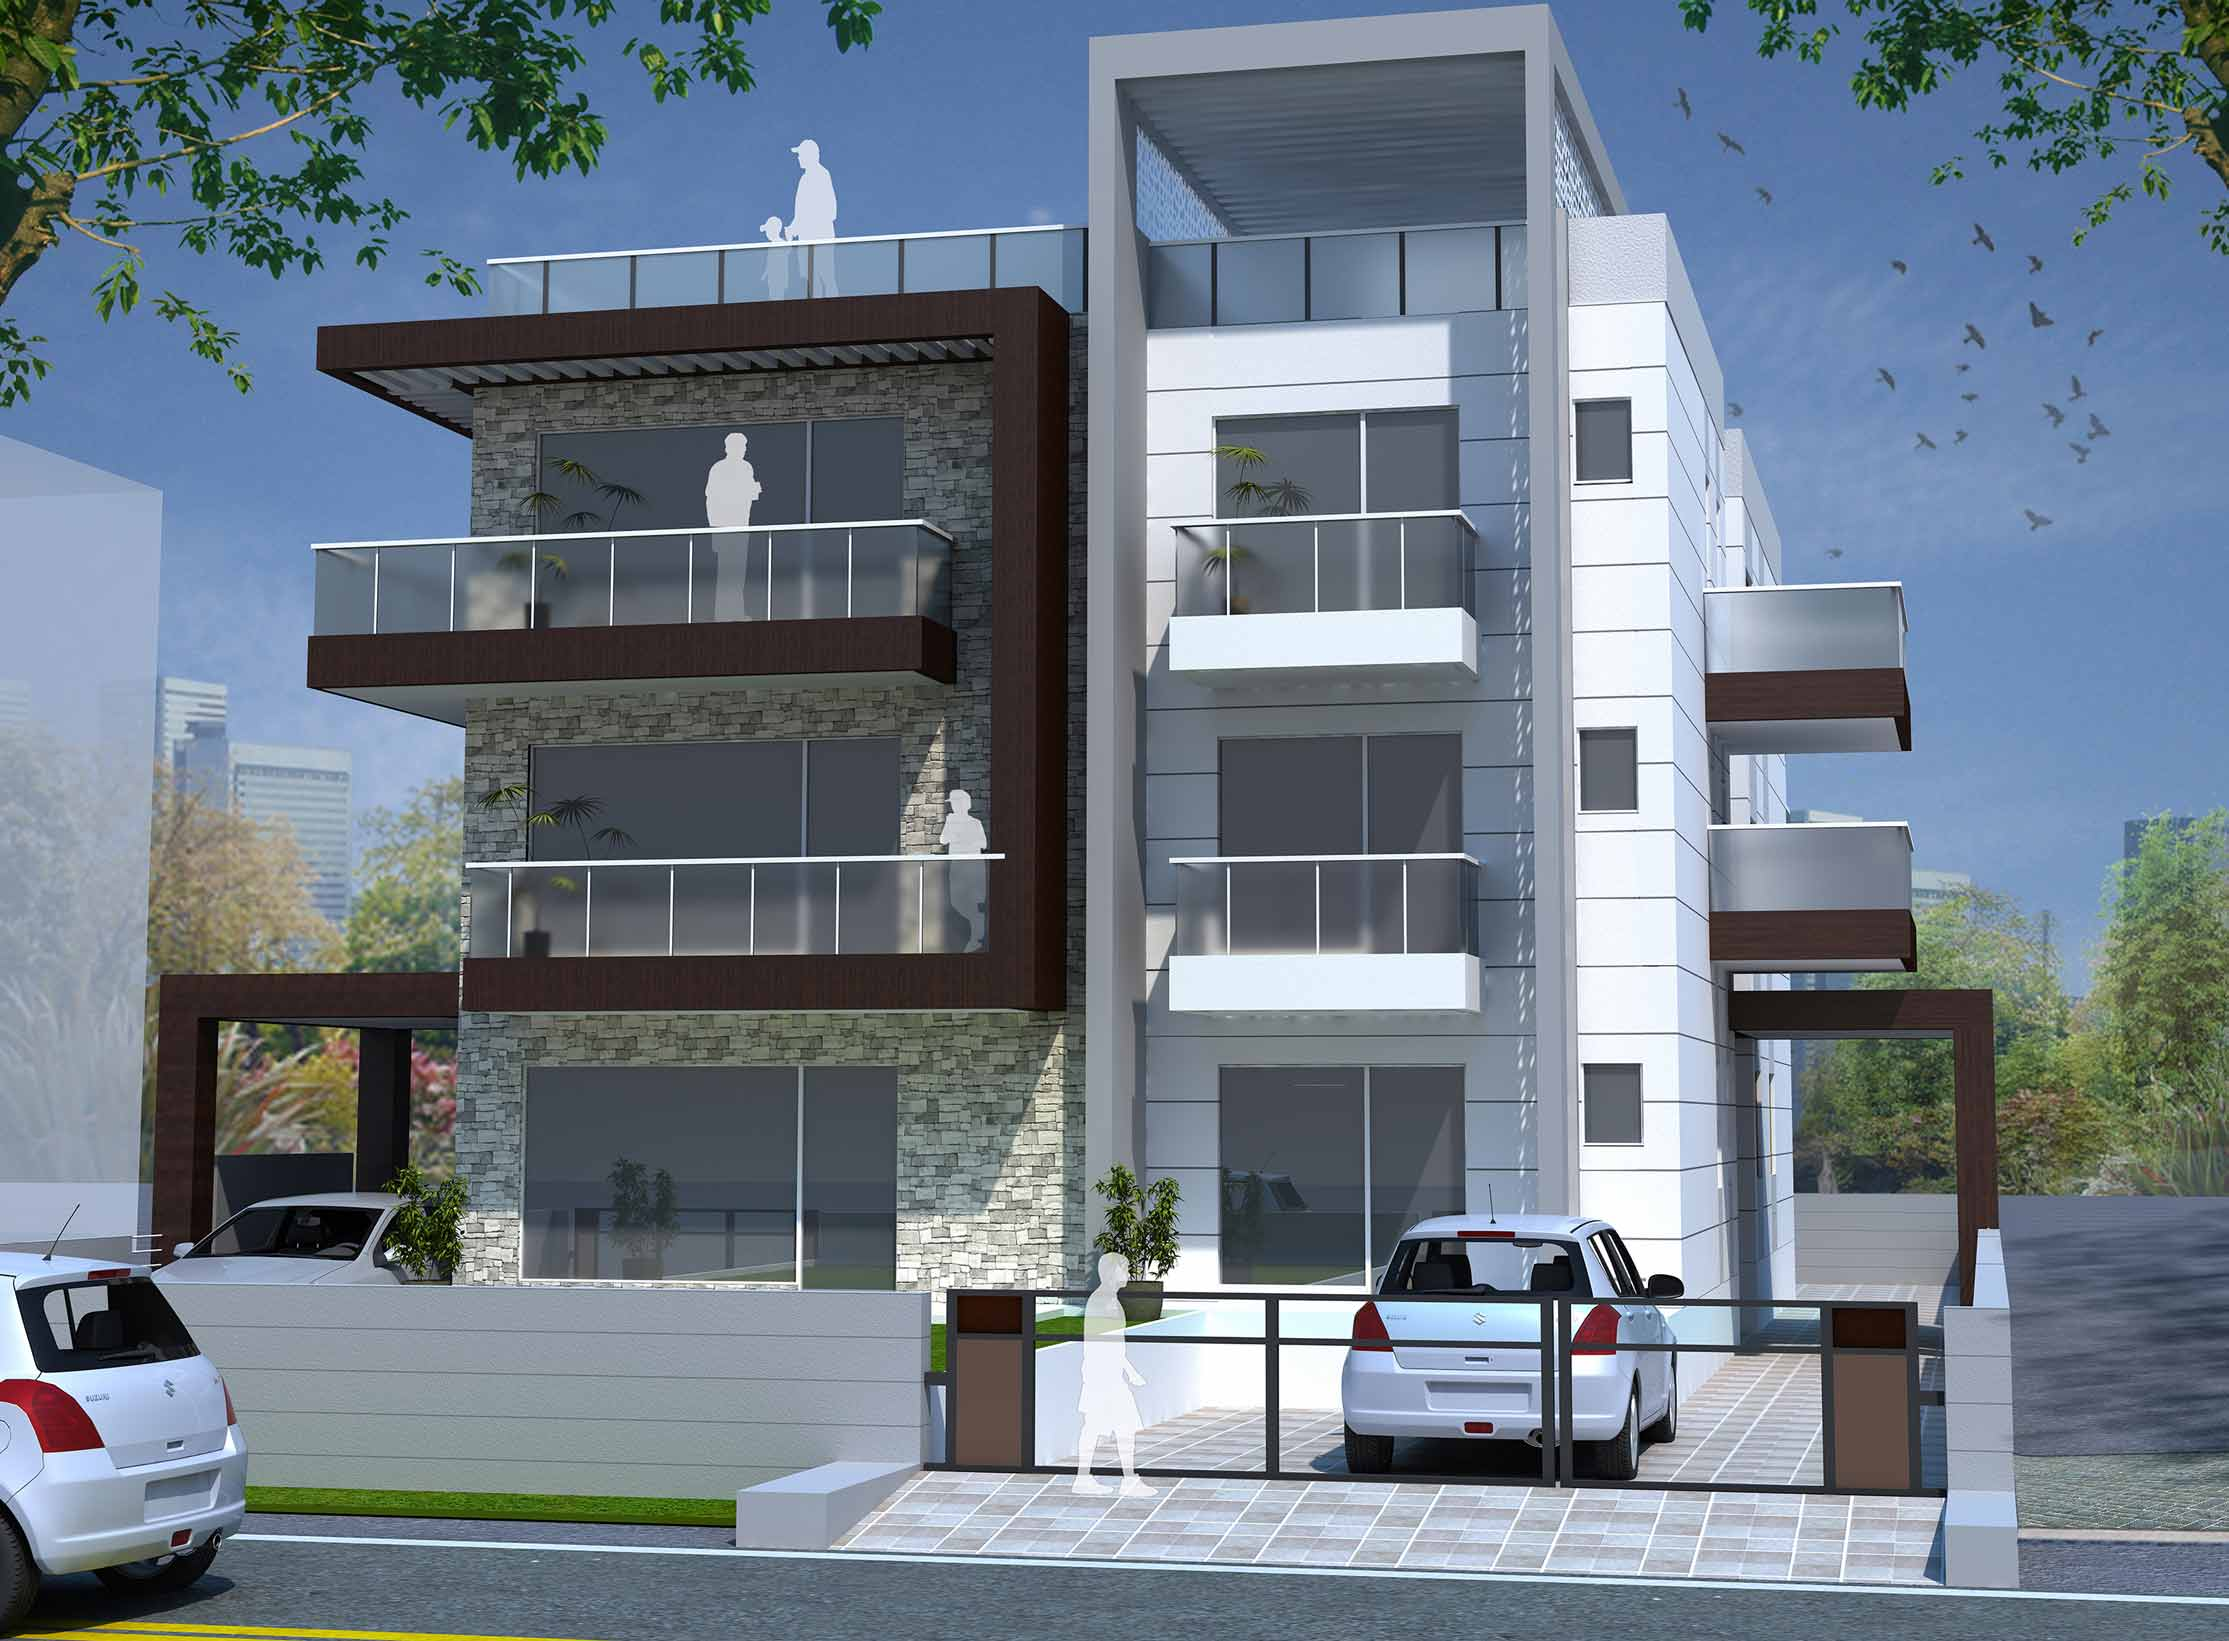 Maas architects delhi architectural firm specialized in for Residential architecture firms